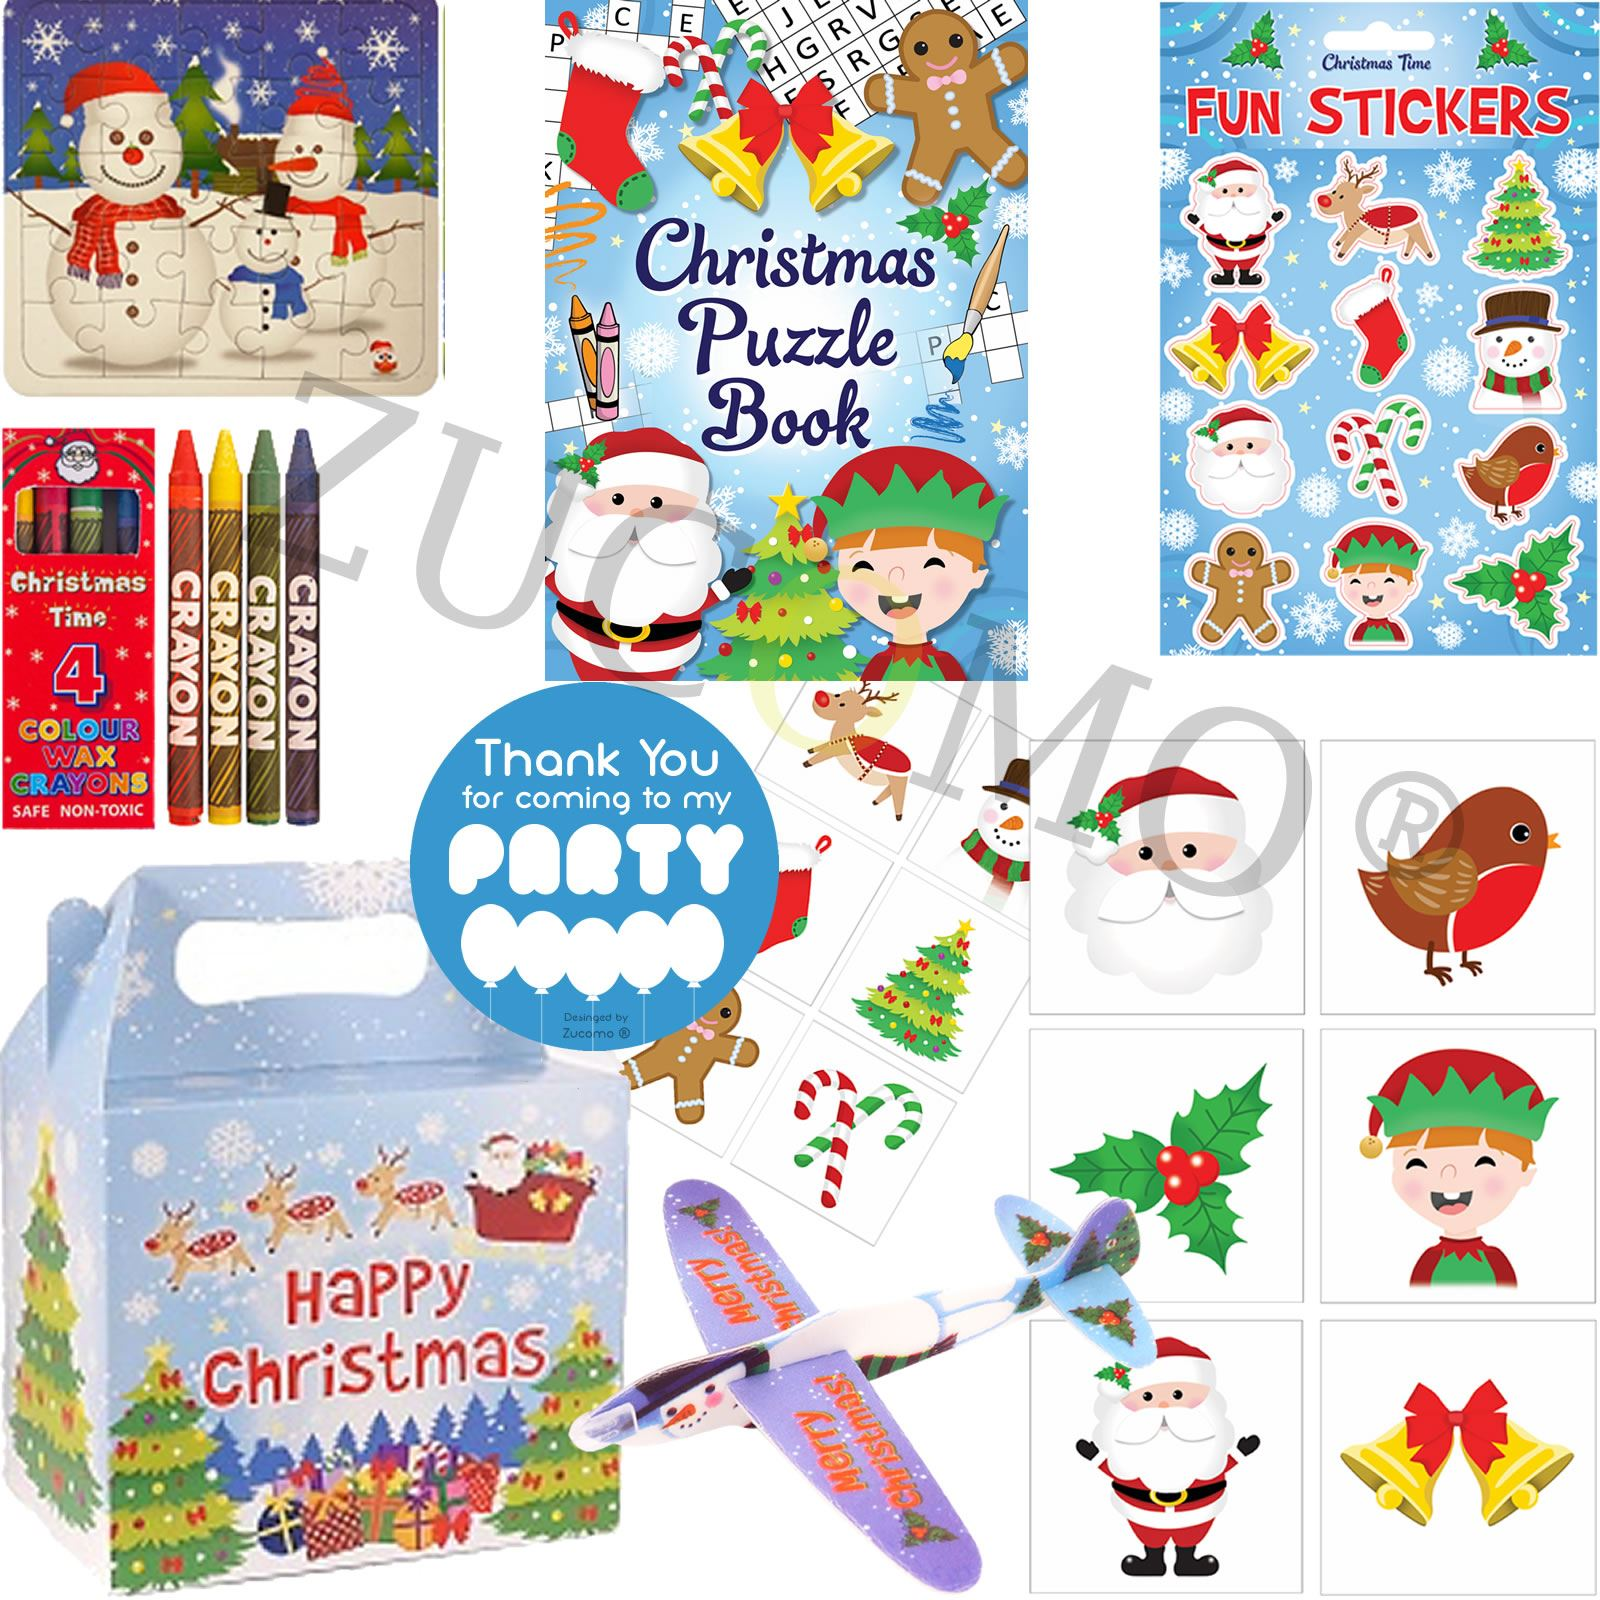 Boys Girls Gift Bags Childrens Birthday Loot Kids Party Bag Fillers